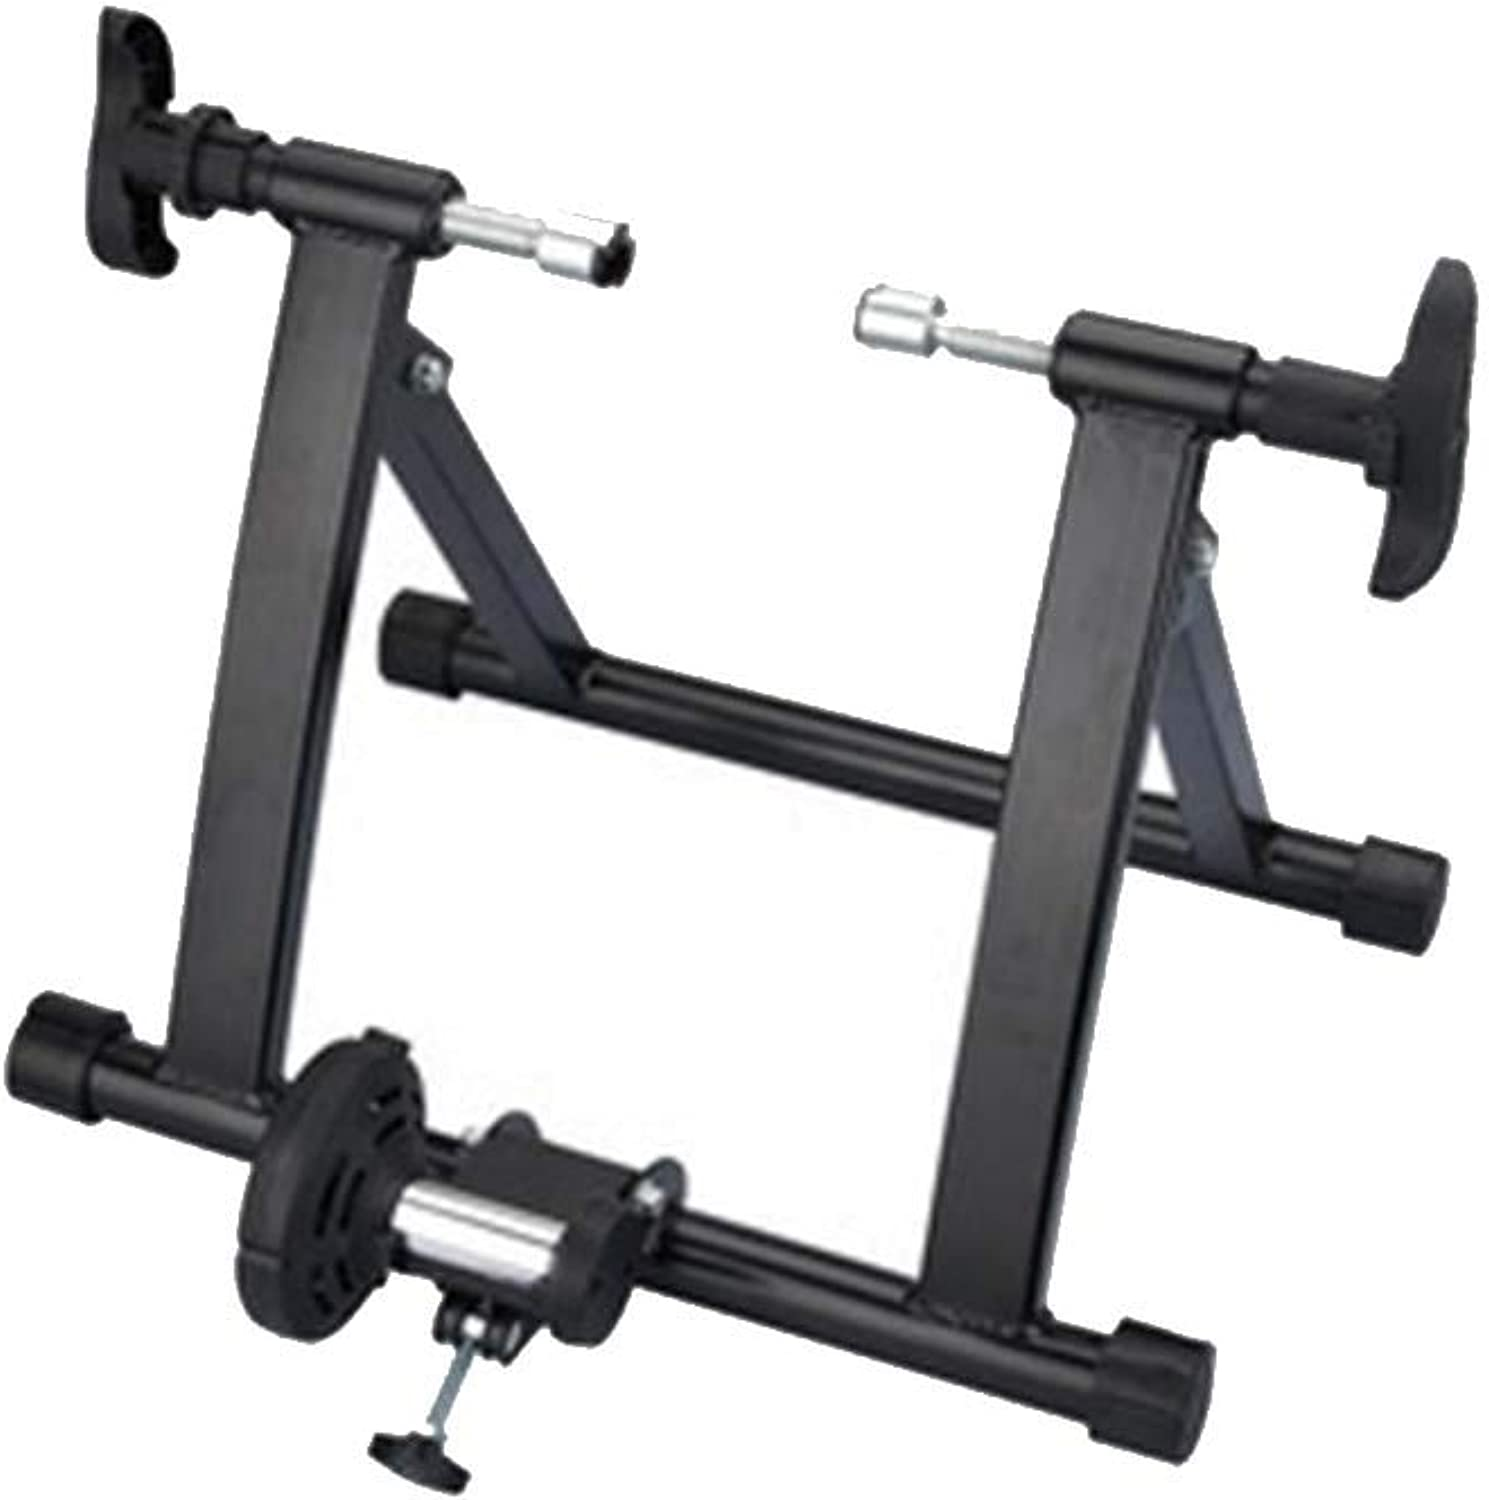 Portable Exercise Bicycle Stand  Indoor Bike Trainer Stand for 18 20  Wheel Road Bike